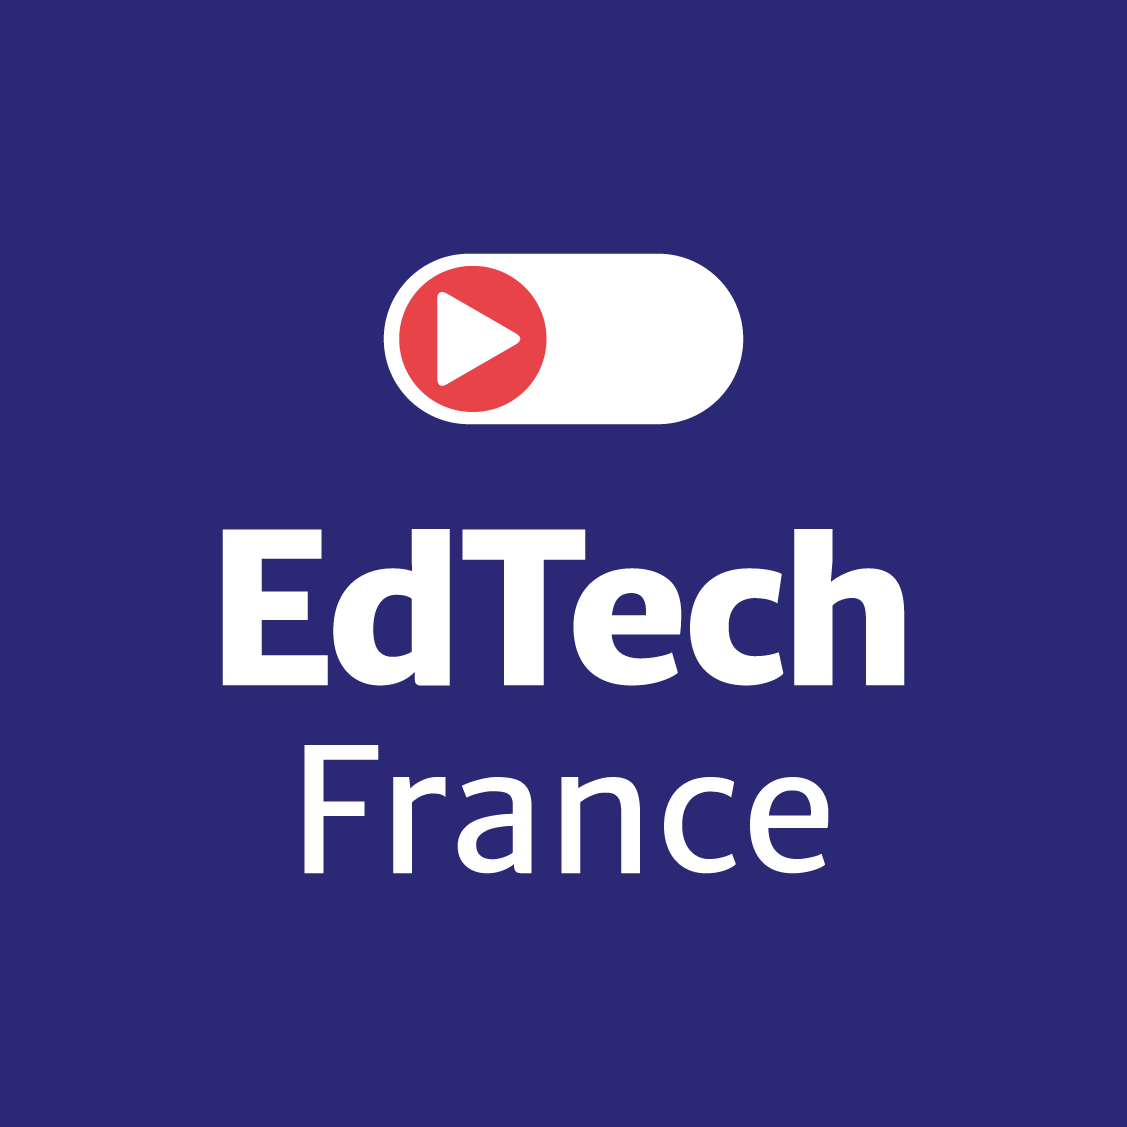 Junior Makers Place membre de EdTech France